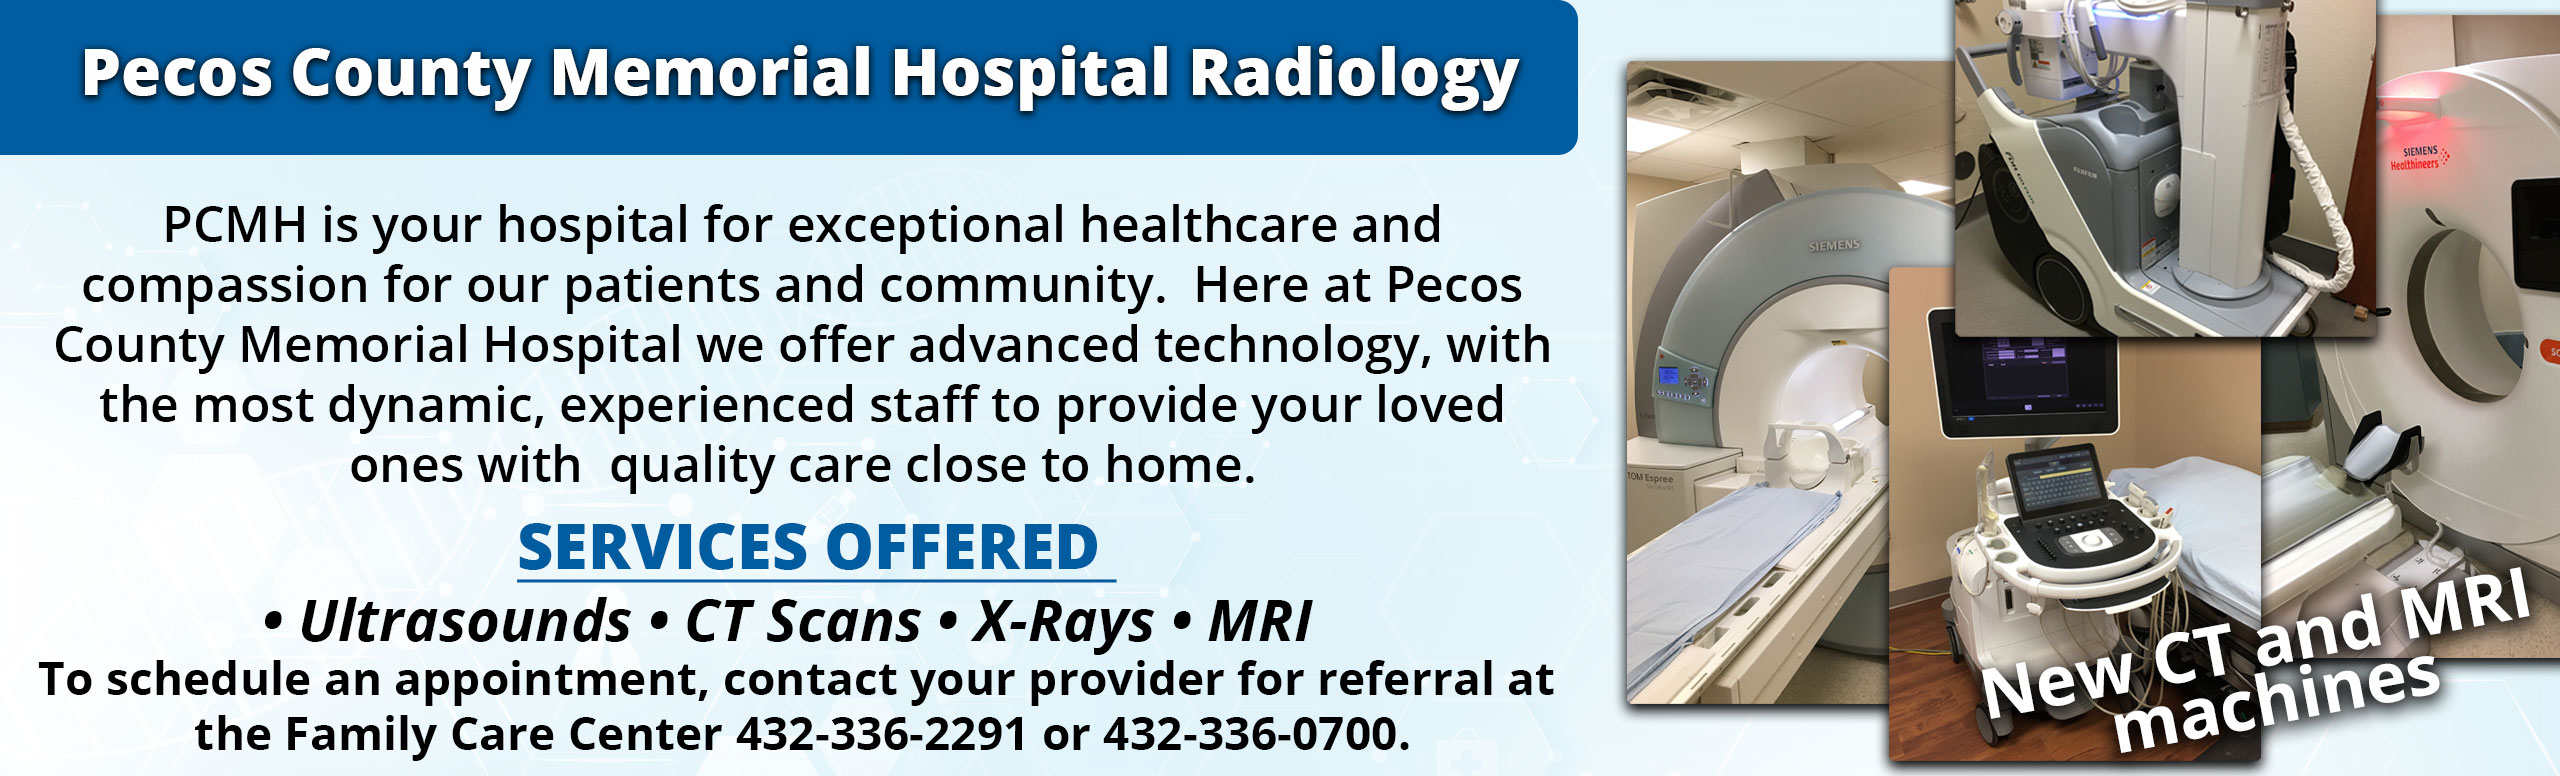 Pecos County Memorial Hospital Radiology  PCMH is your hospital for exceptional healthcare and compassion for our patients and community.  Here at Pecos County Memorial Hospital we offer advanced technology, with the most dynamic, experienced staff to provide your loved ones with  quality care close to home.  Services Offered  • Ultrasounds • CT Scans • X-Rays • MRI   To schedule an appointment, contact your provider for referral at  the Family Care Center 432-336-2291 or 432-336-0700.